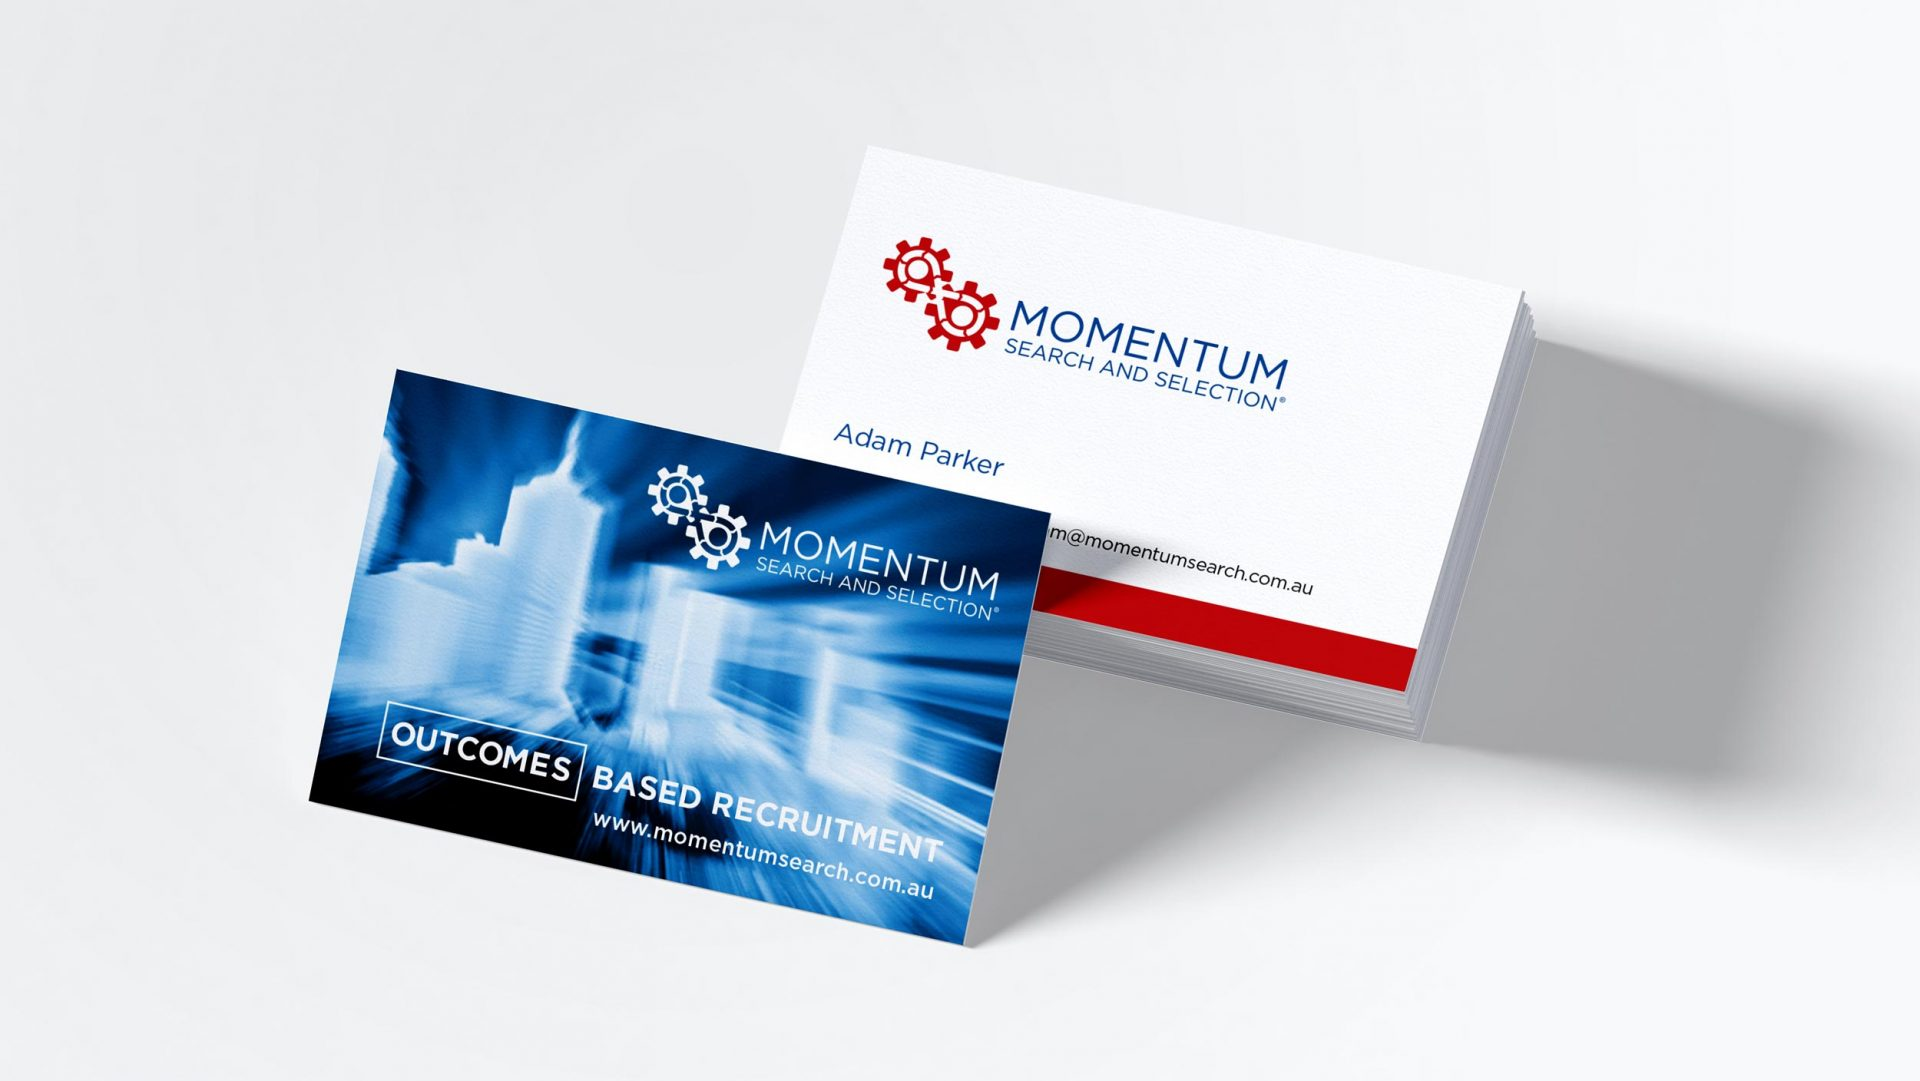 Momentum Search and Selection business cards